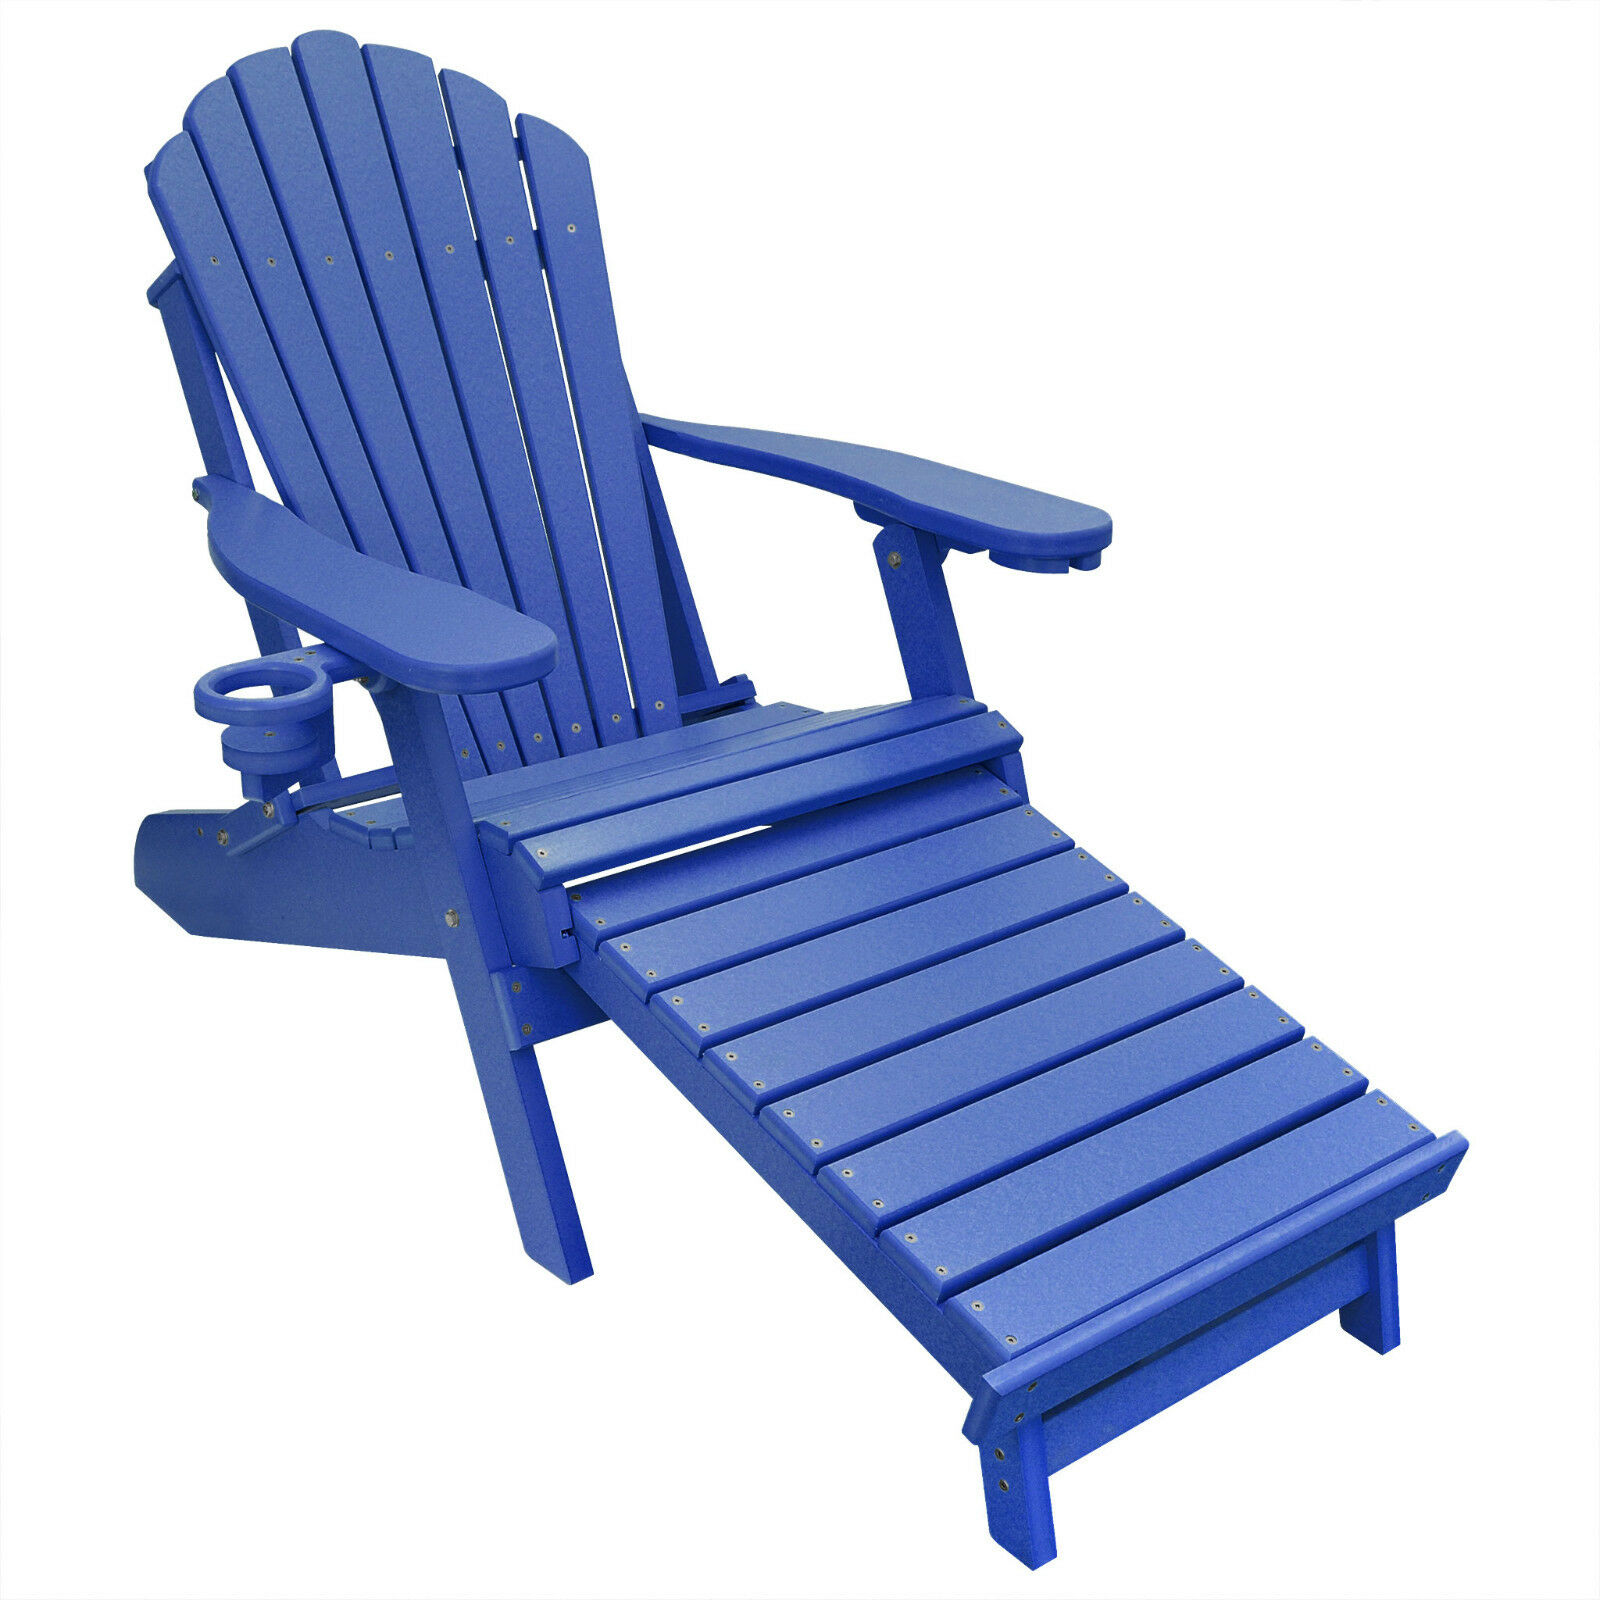 Deluxe Outer Banks Poly Adirondack Chair w/ Integrated Footr